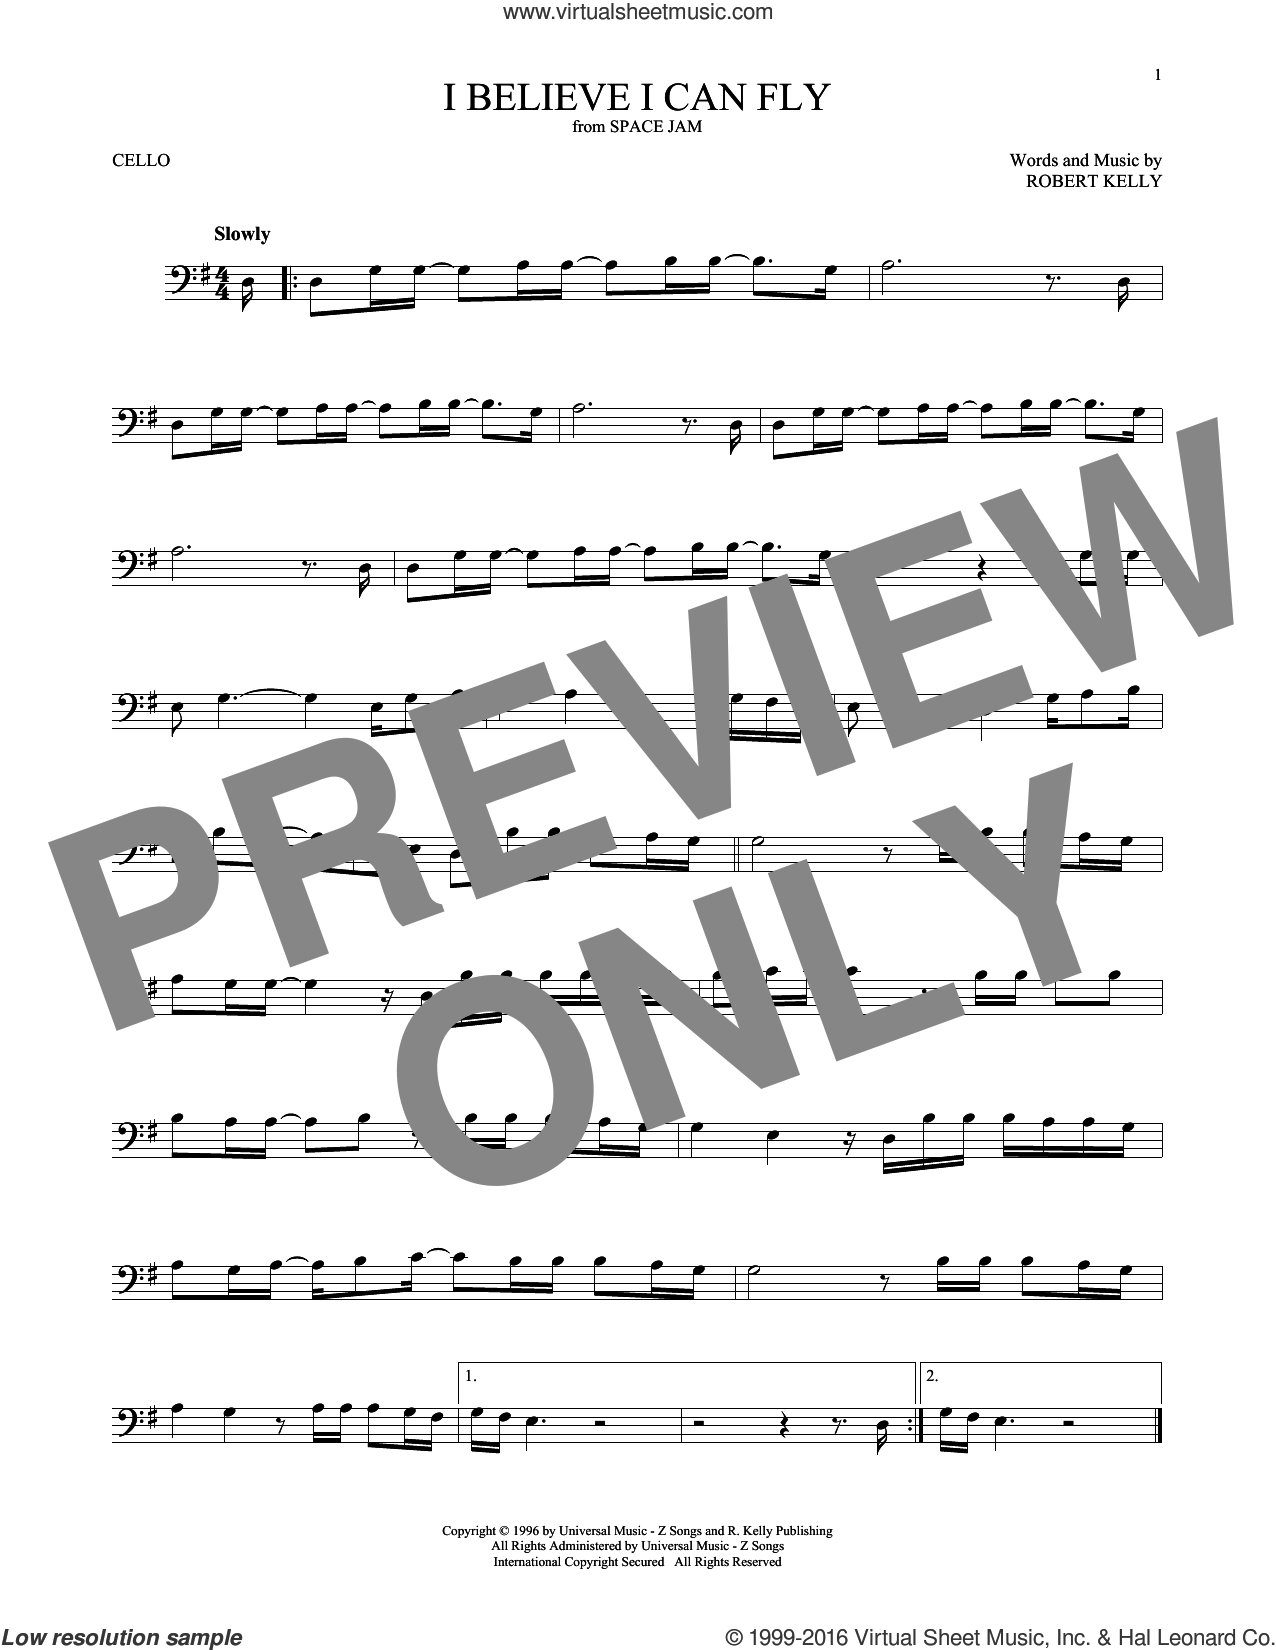 I Believe I Can Fly sheet music for cello solo by Robert Kelly. Score Image Preview.